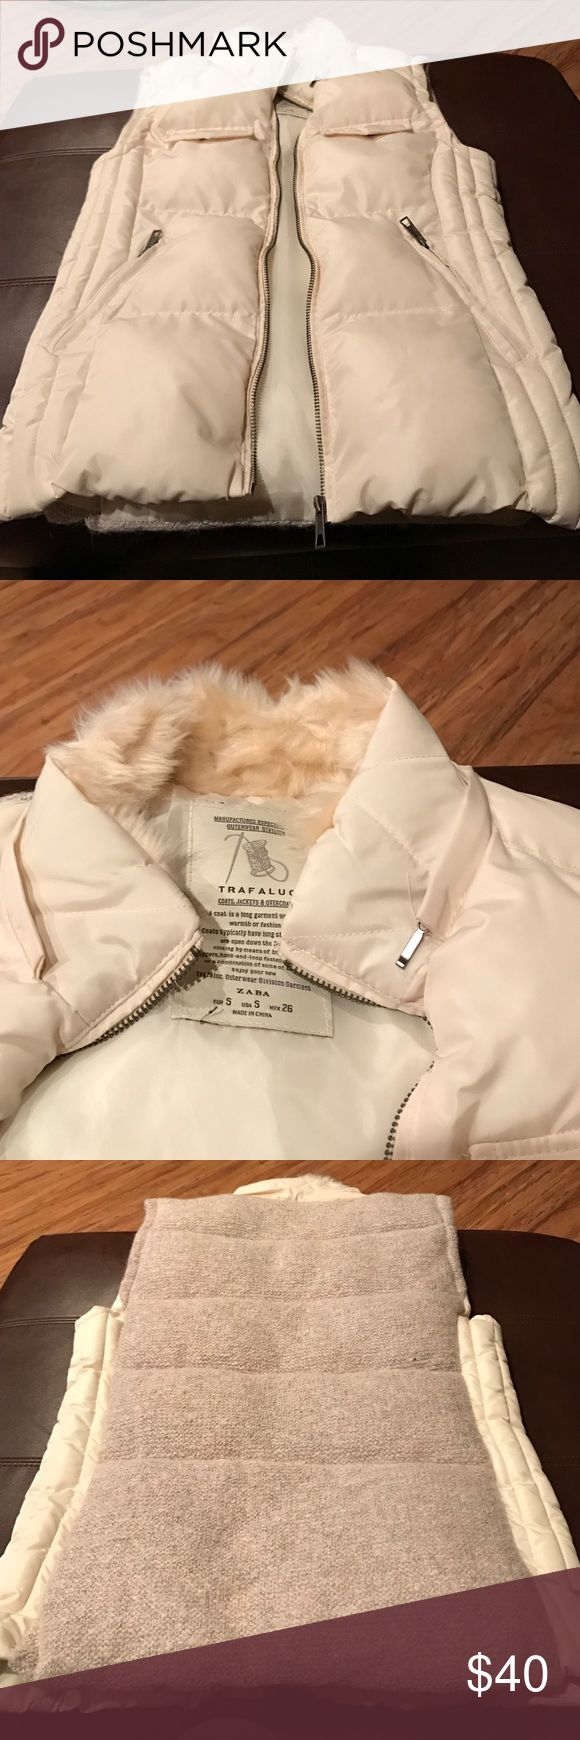 Nude vest Women's size small nude puffy vest. Worn only once and is in very good condition and looks new. No stains or marks. Zara brand. Zara Jackets & Coats Vests